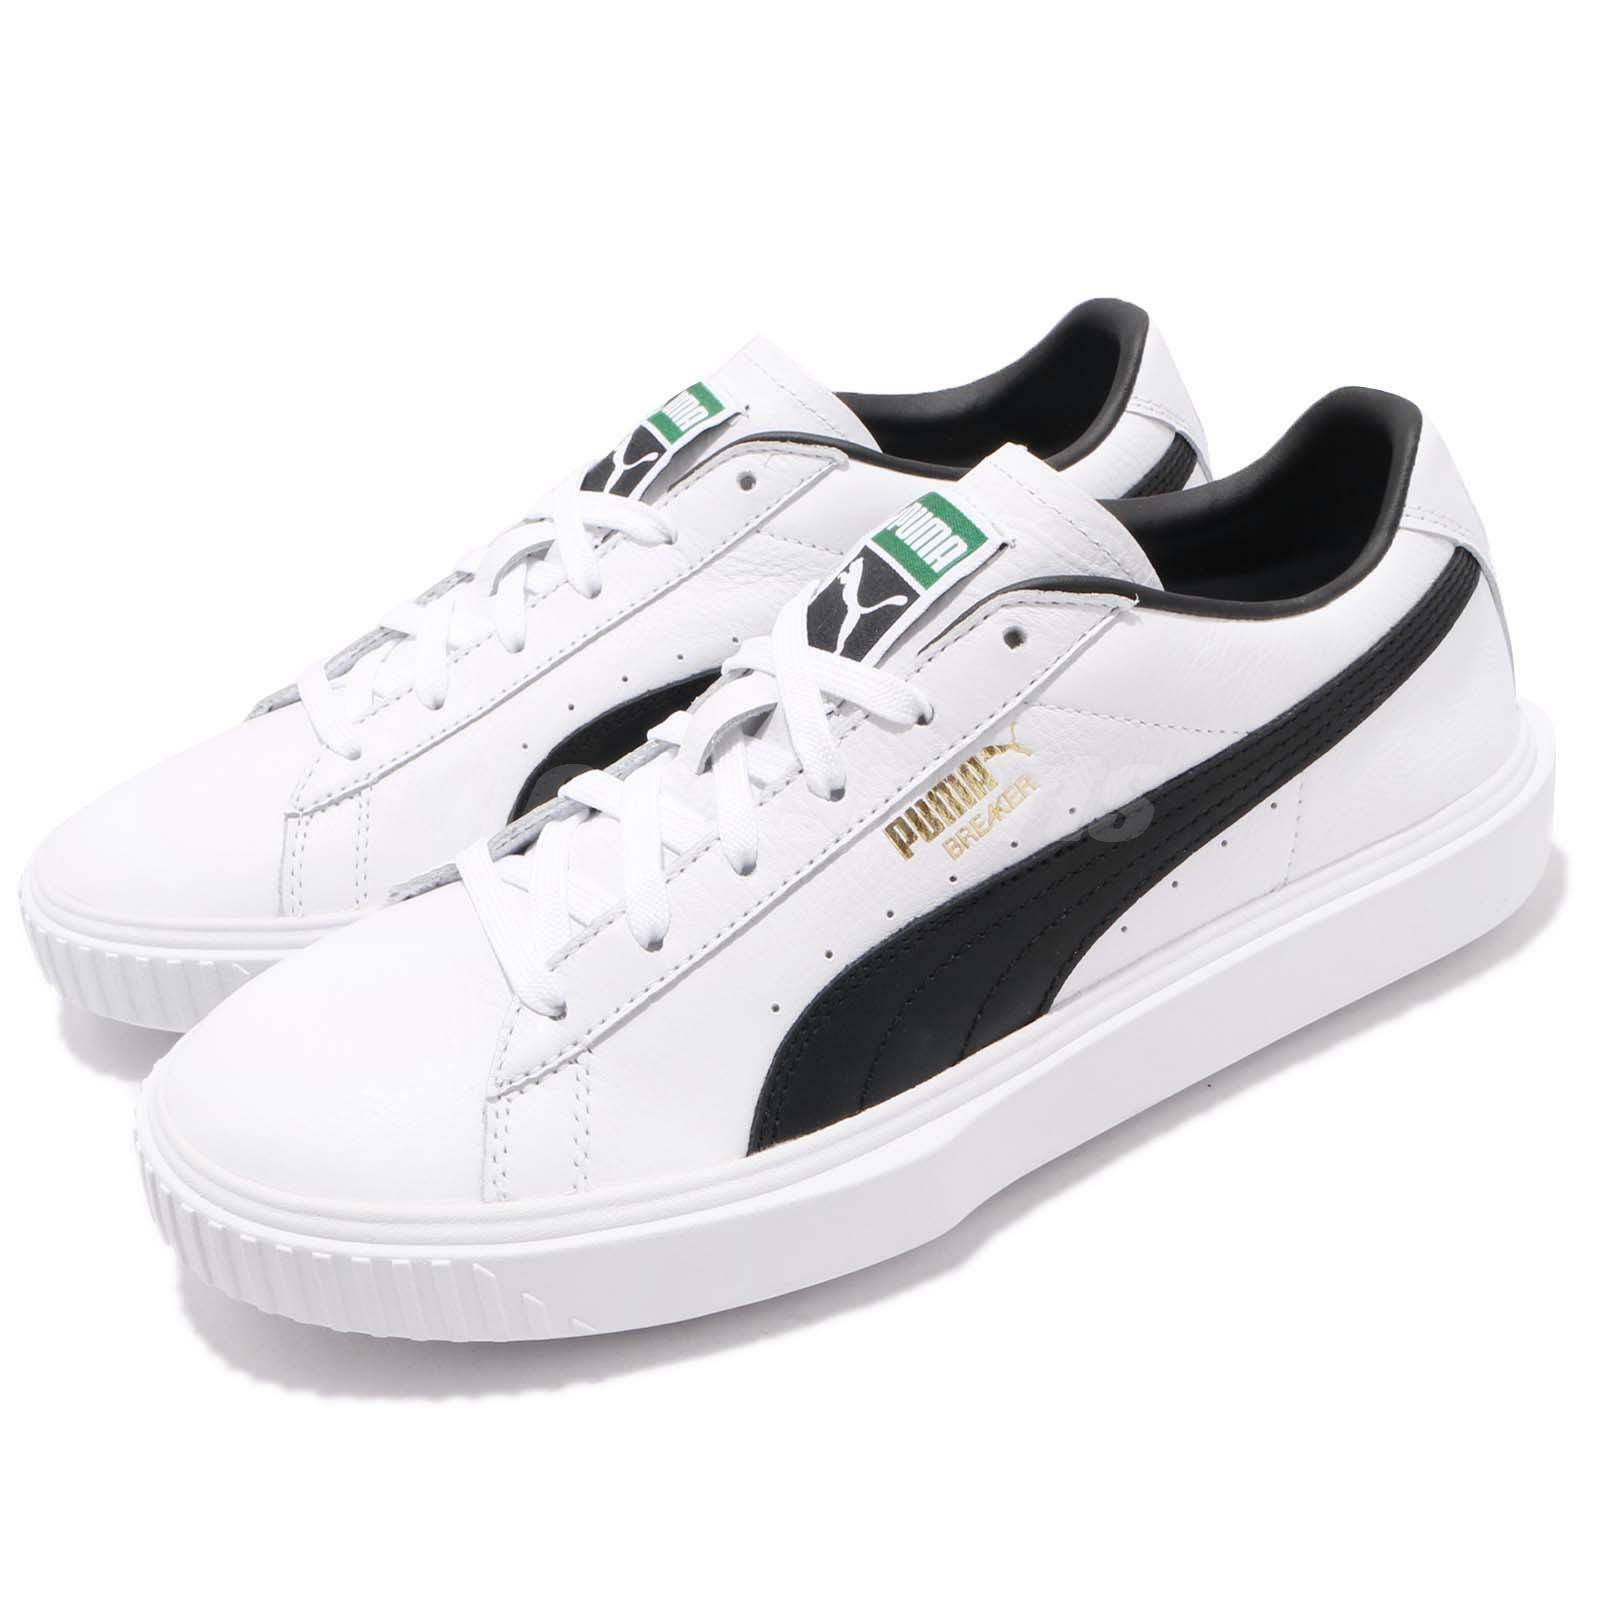 Puma Breaker LTHR Leather blanc  Noir Hommes Casual Chaussures Sneakers 366078-02